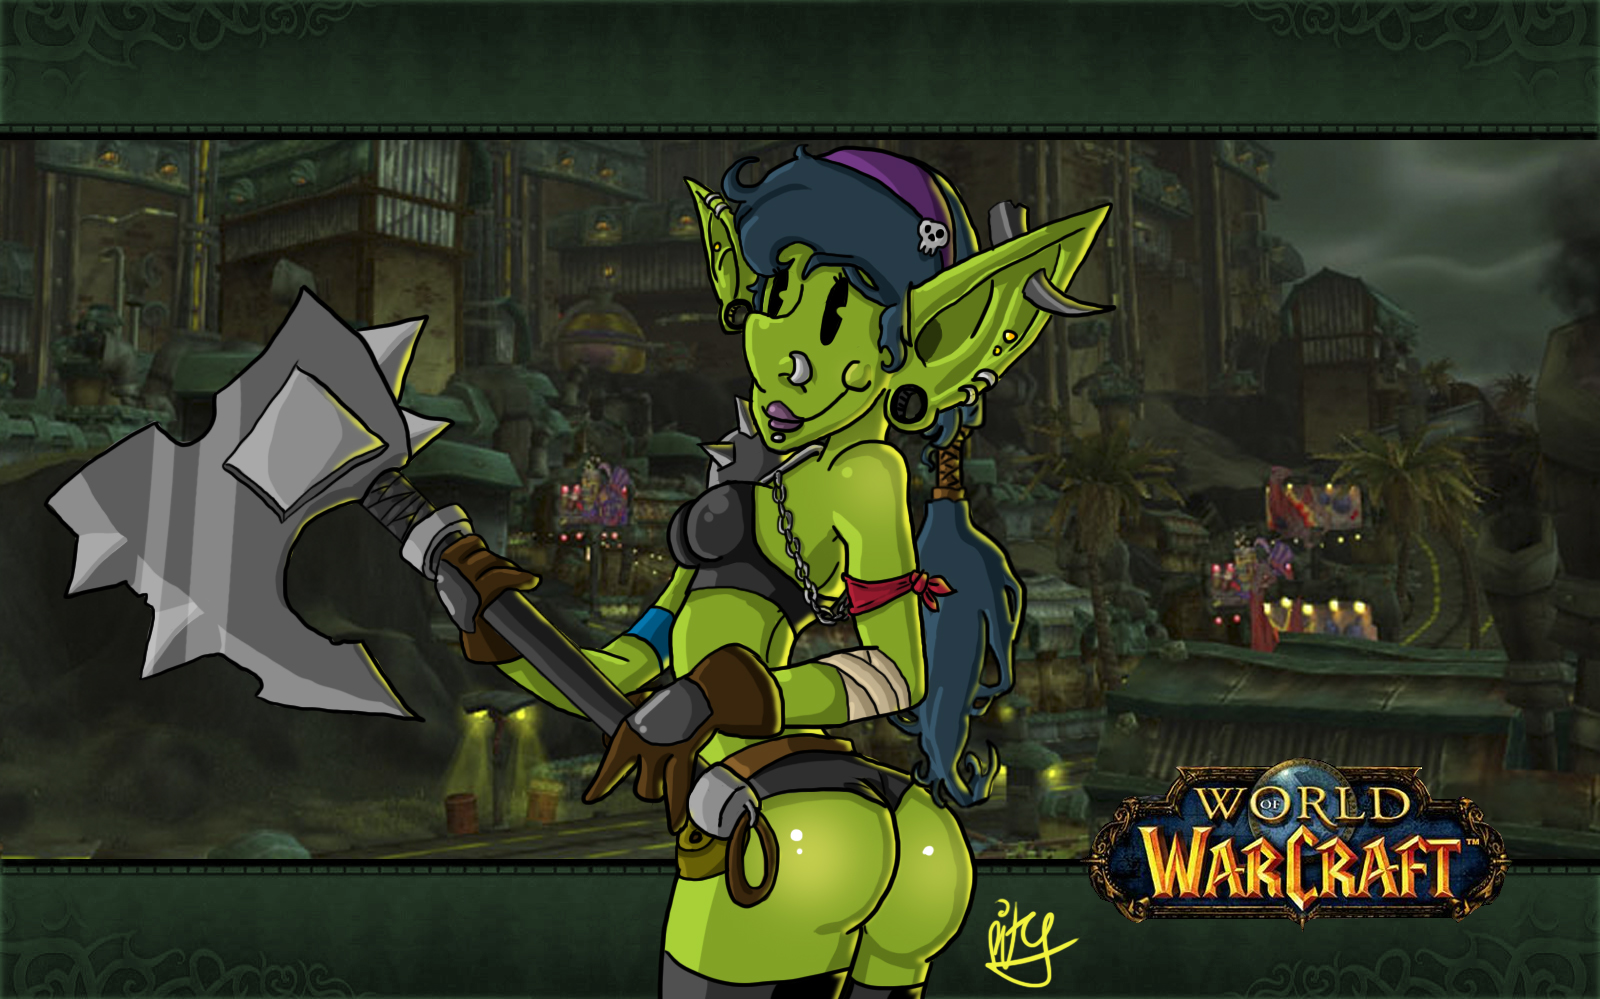 World of Warcraft orc flirts nude movies